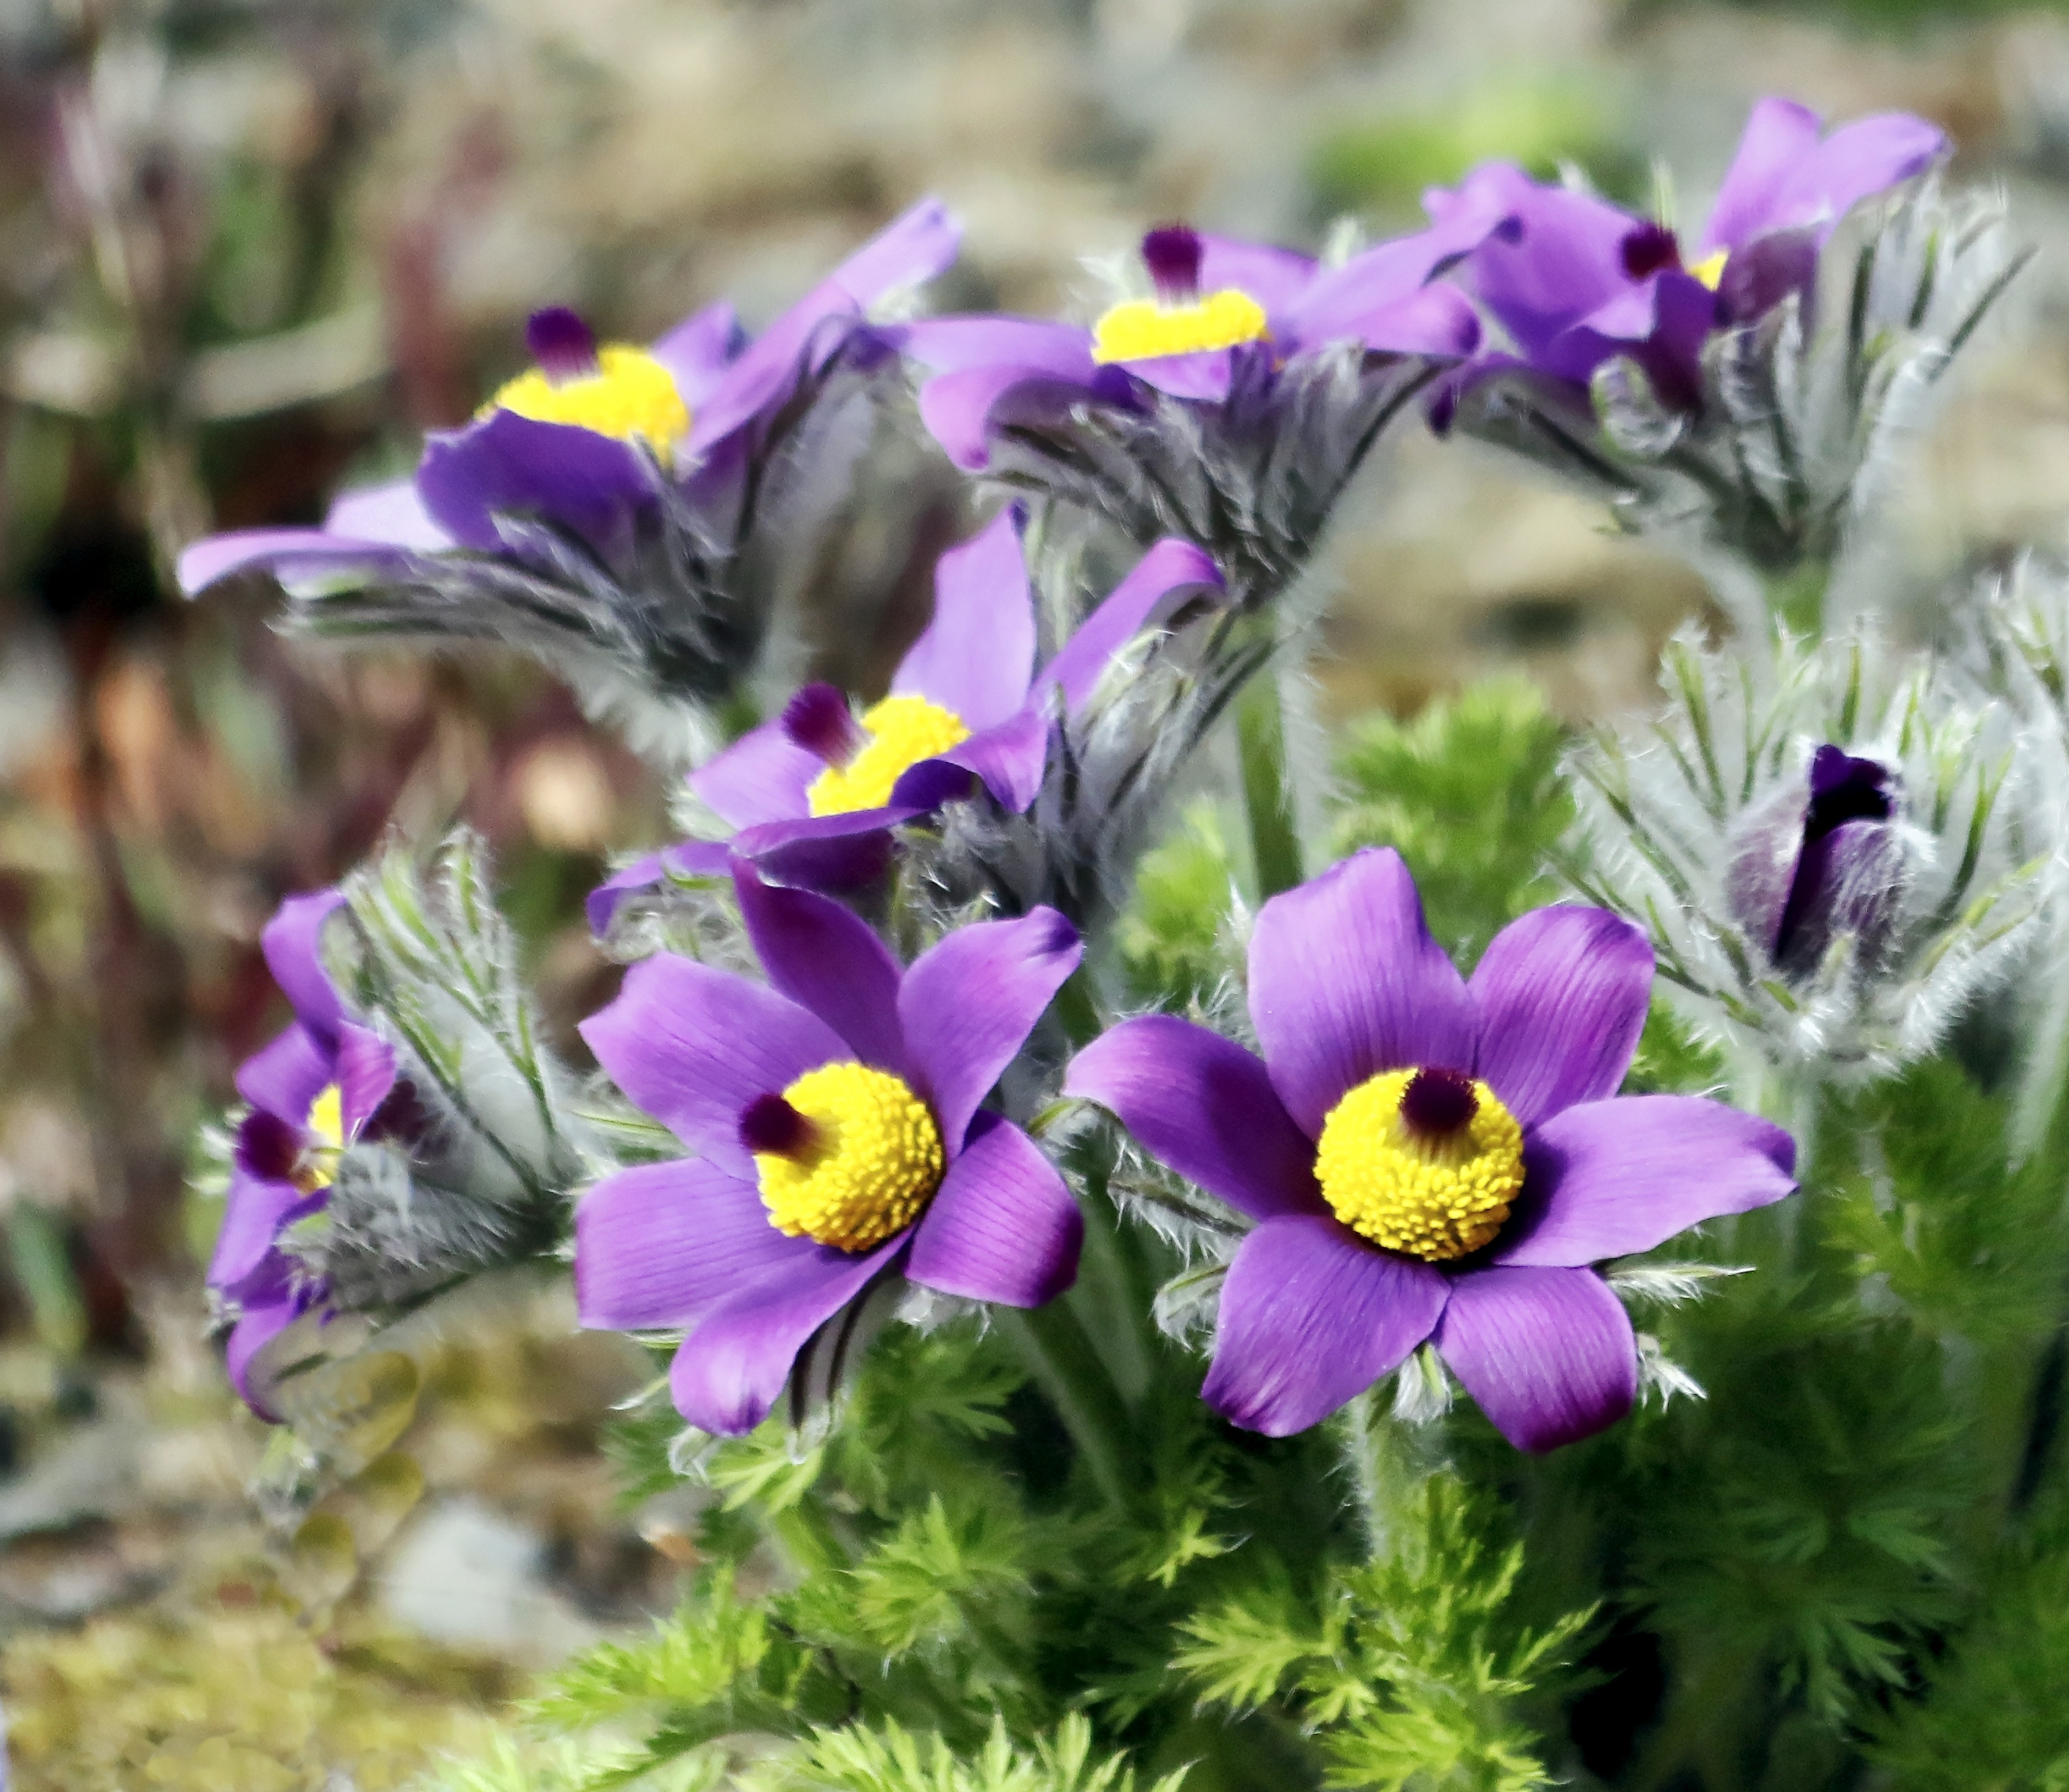 Purple Flowers With Yellow Stamens Free Image